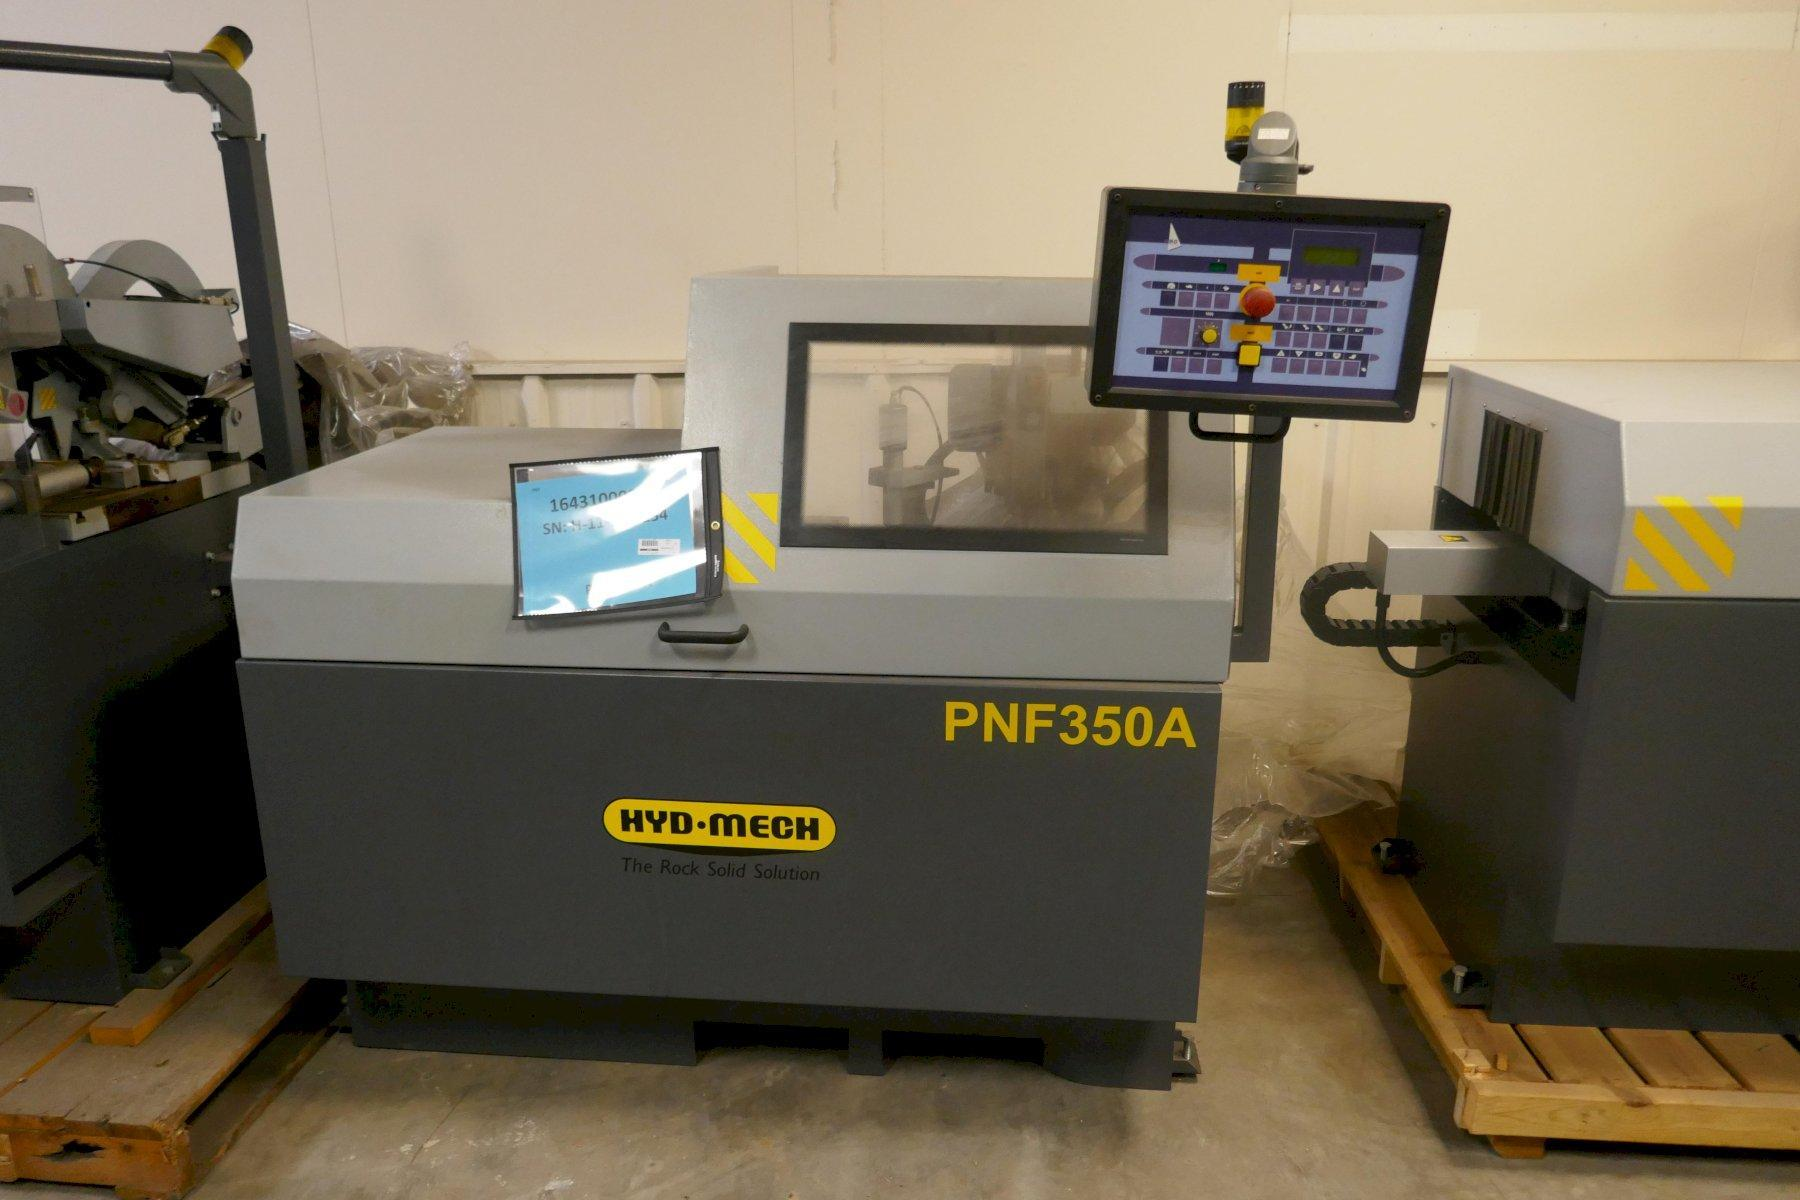 DEMO HYD-MECH MODEL PNF 350A FULLY AUTOMATIC NON-FERROUS CIRCULAR SAW (ALUMINUM), Stock # 10768,